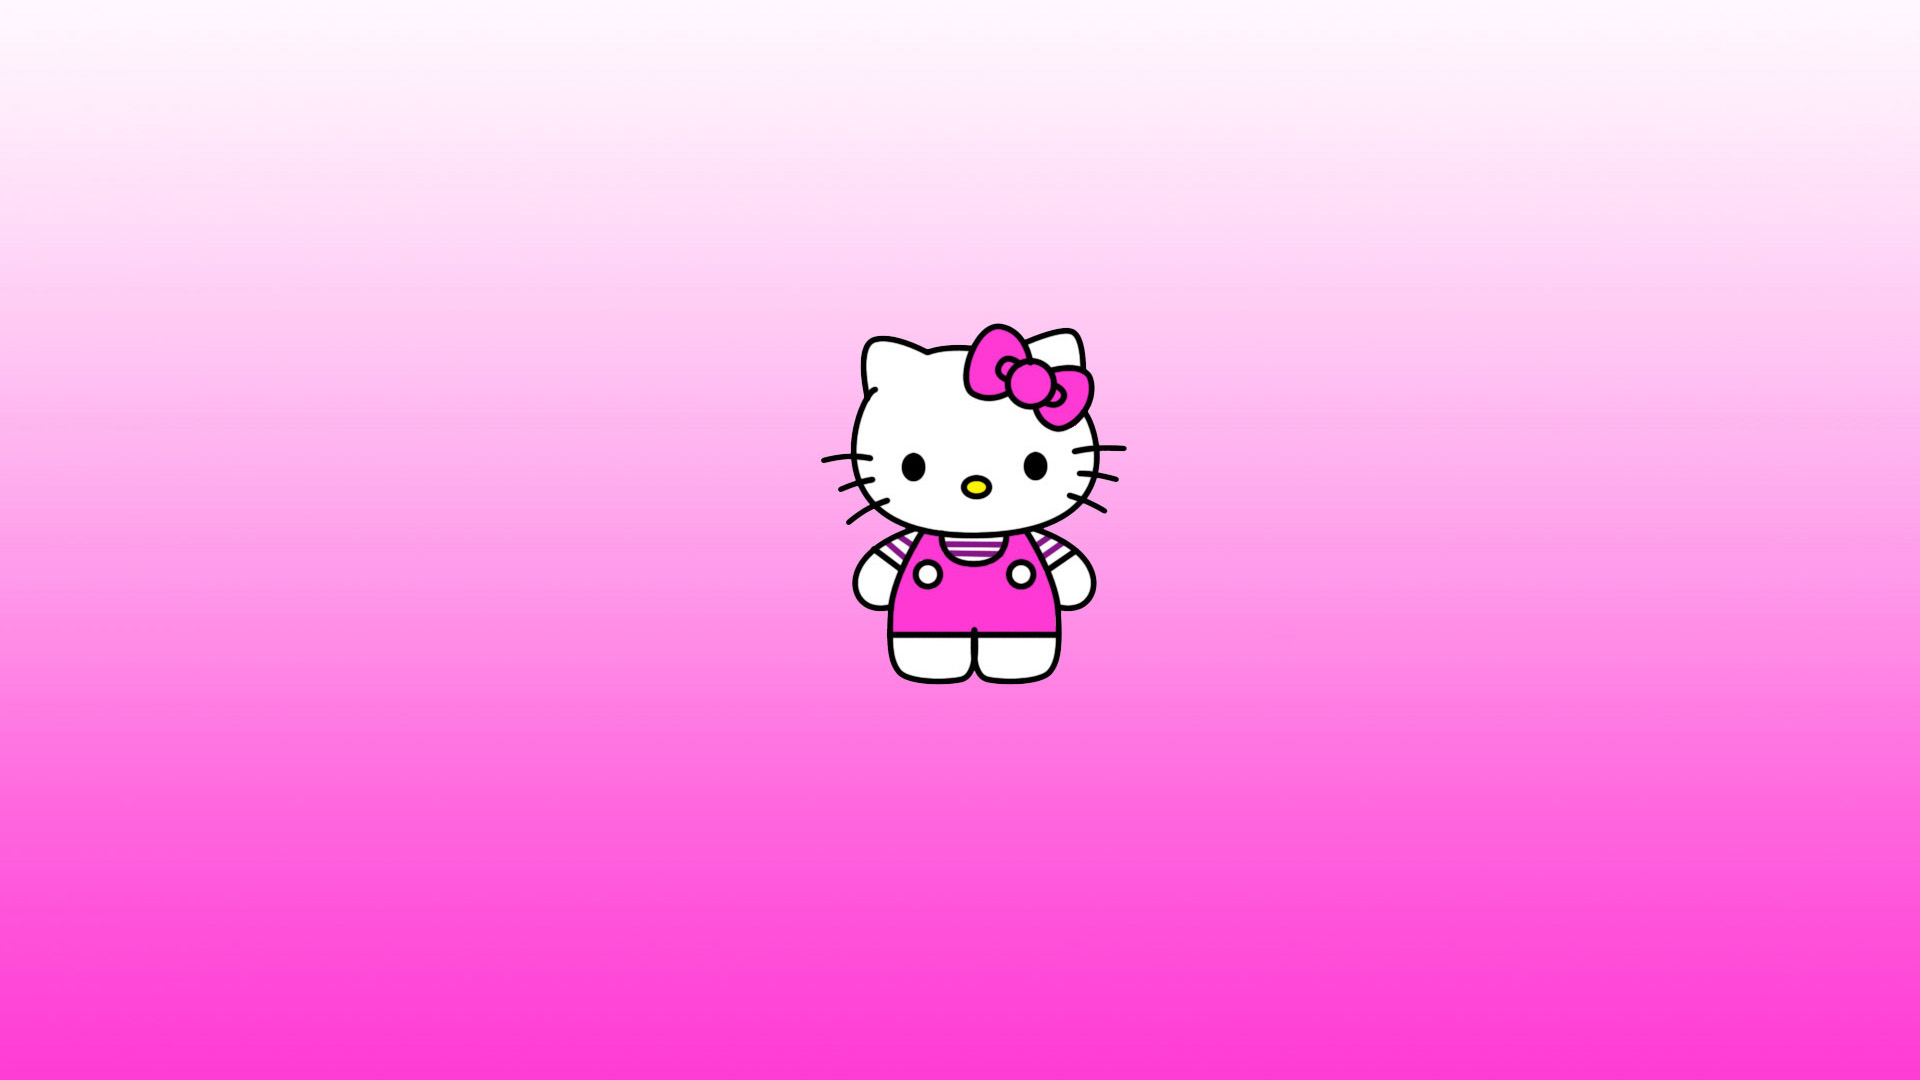 Download Wallpaper Hello Kitty Iphone - xqfUiC  Pictures_104567.jpg